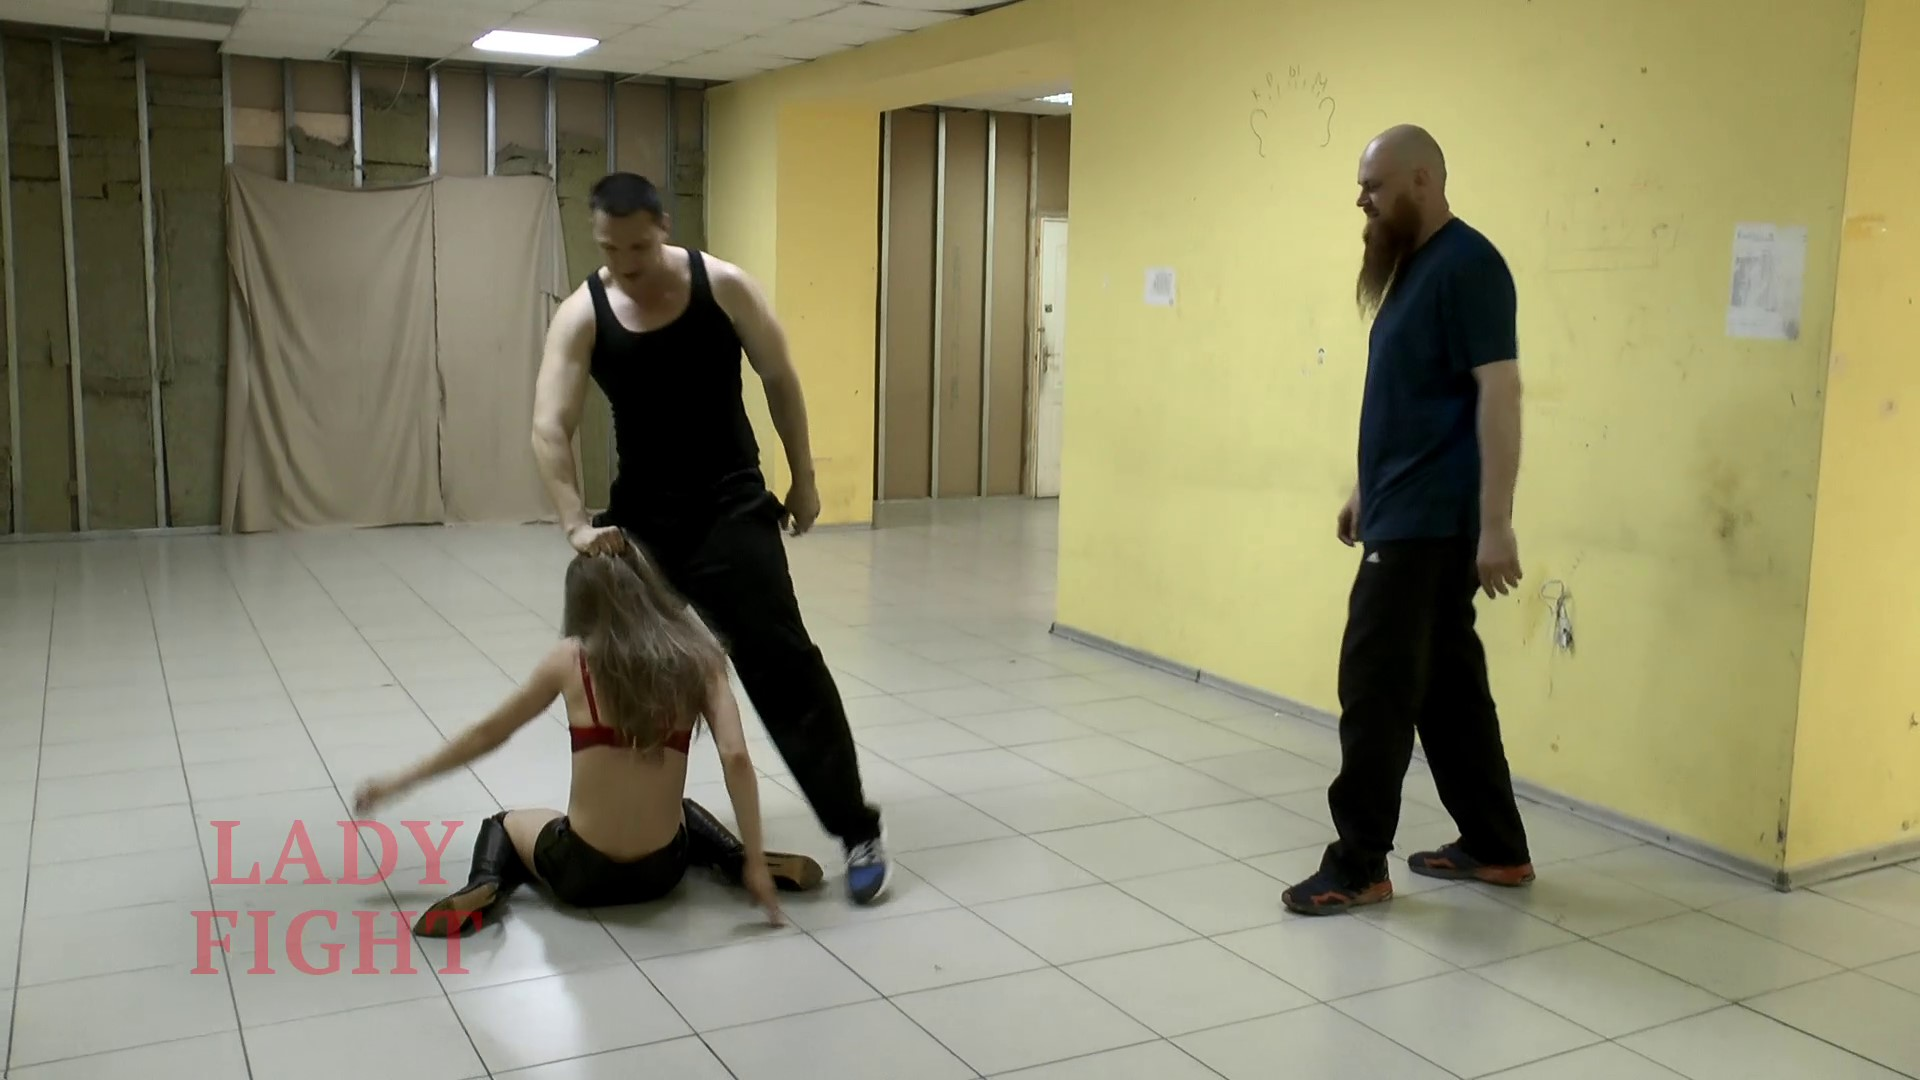 LADYFIGHT-Deadly-Wrestling-For-Lora-27